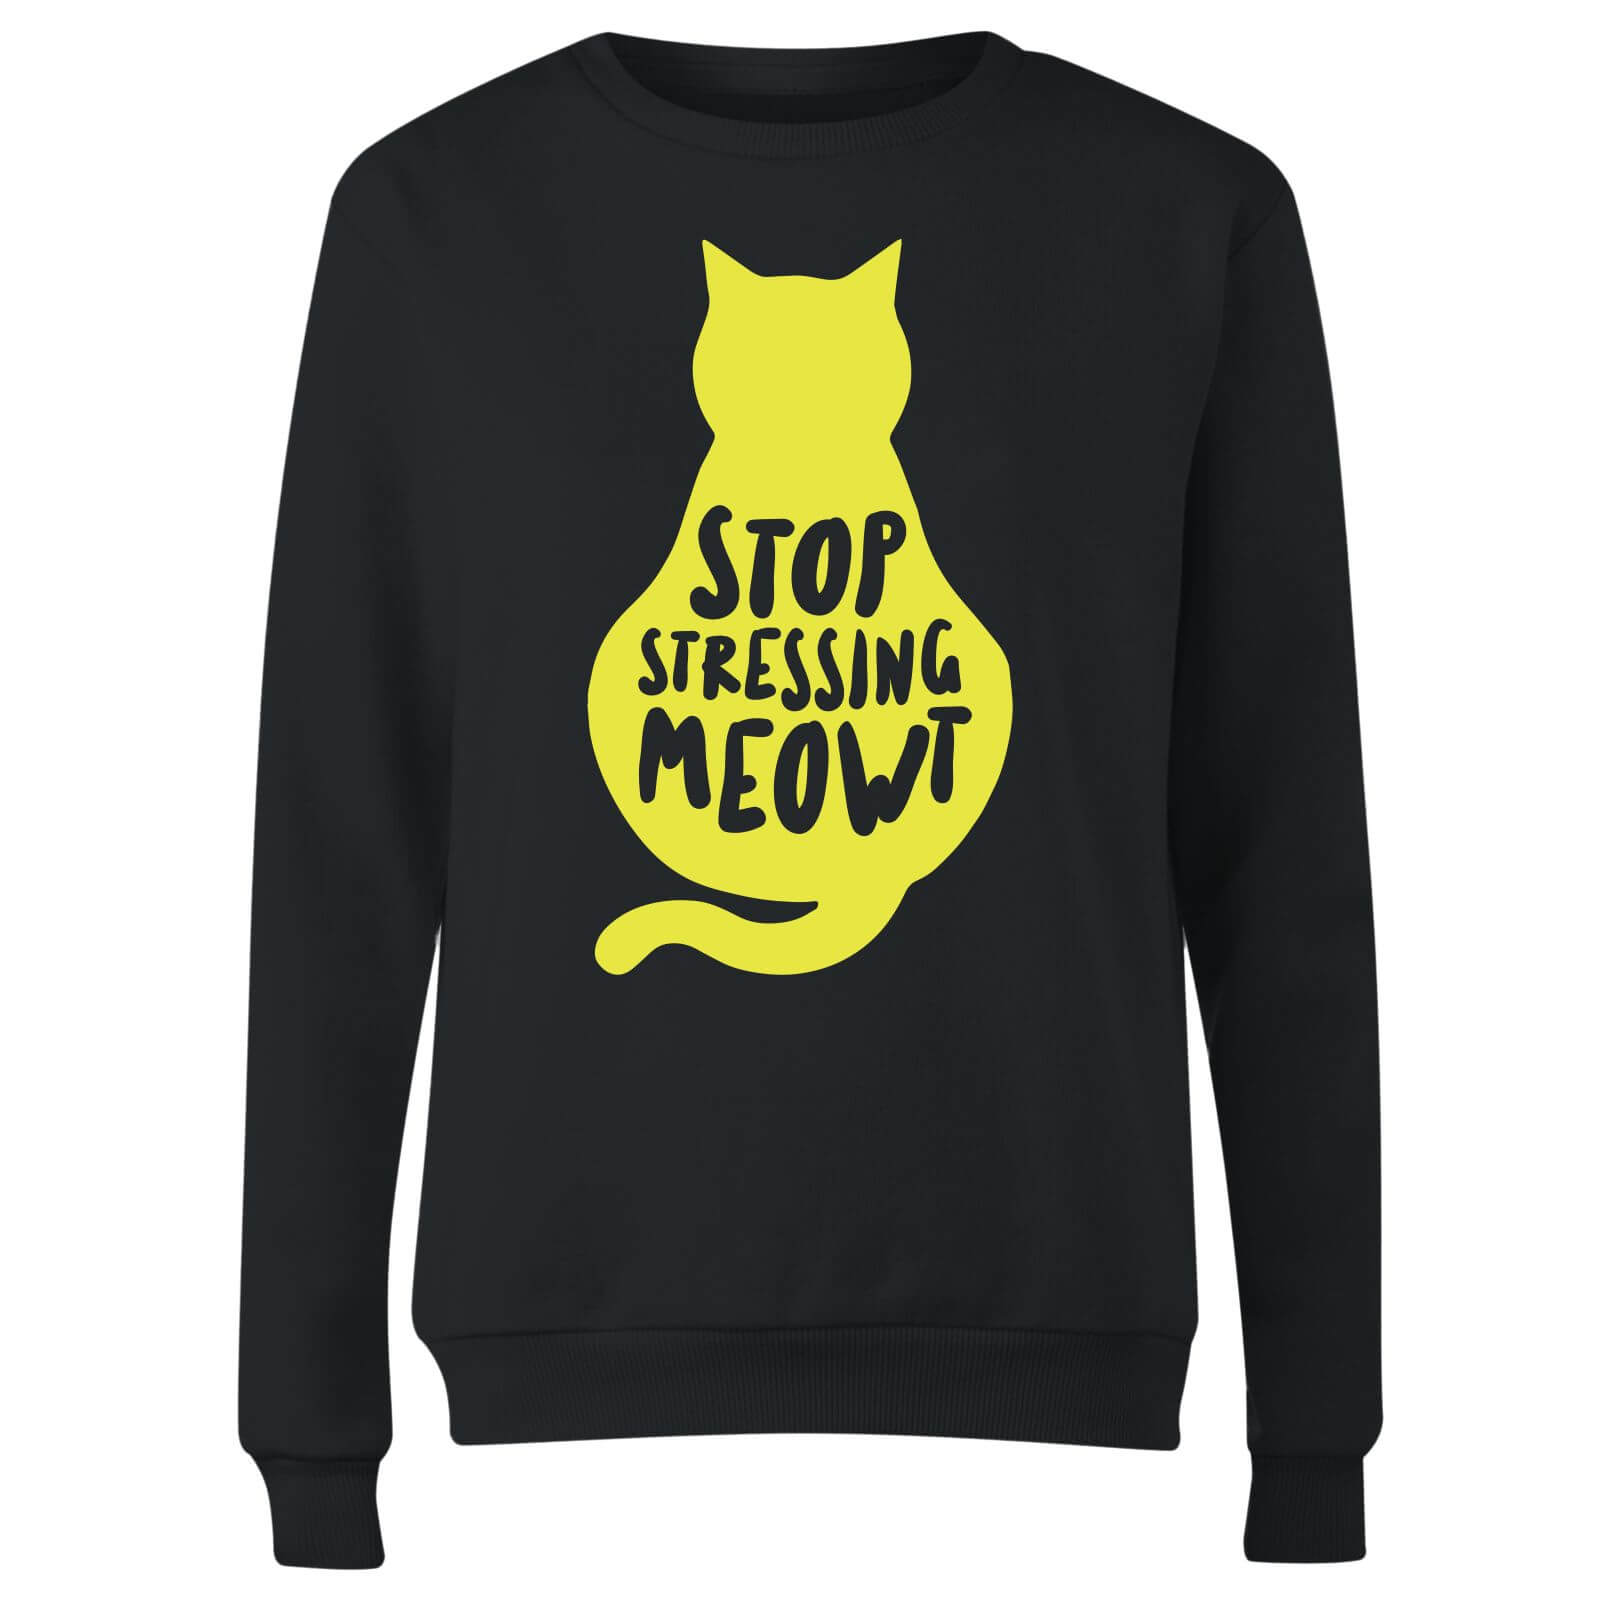 Stop Stressing Meowt Women